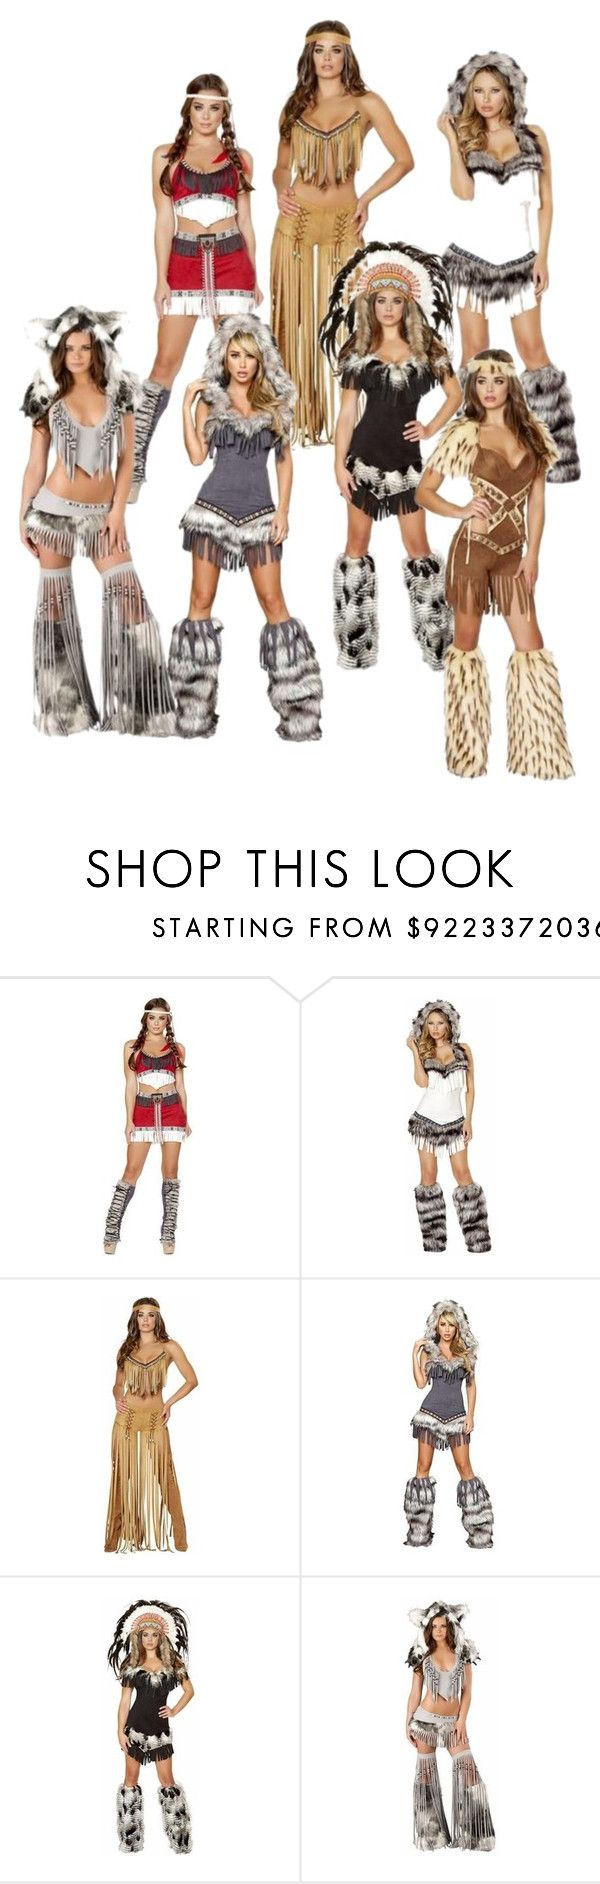 """Sexy American Indian Halloween Costumes @Musotica.com"" by musotica ❤ liked on Polyvore"